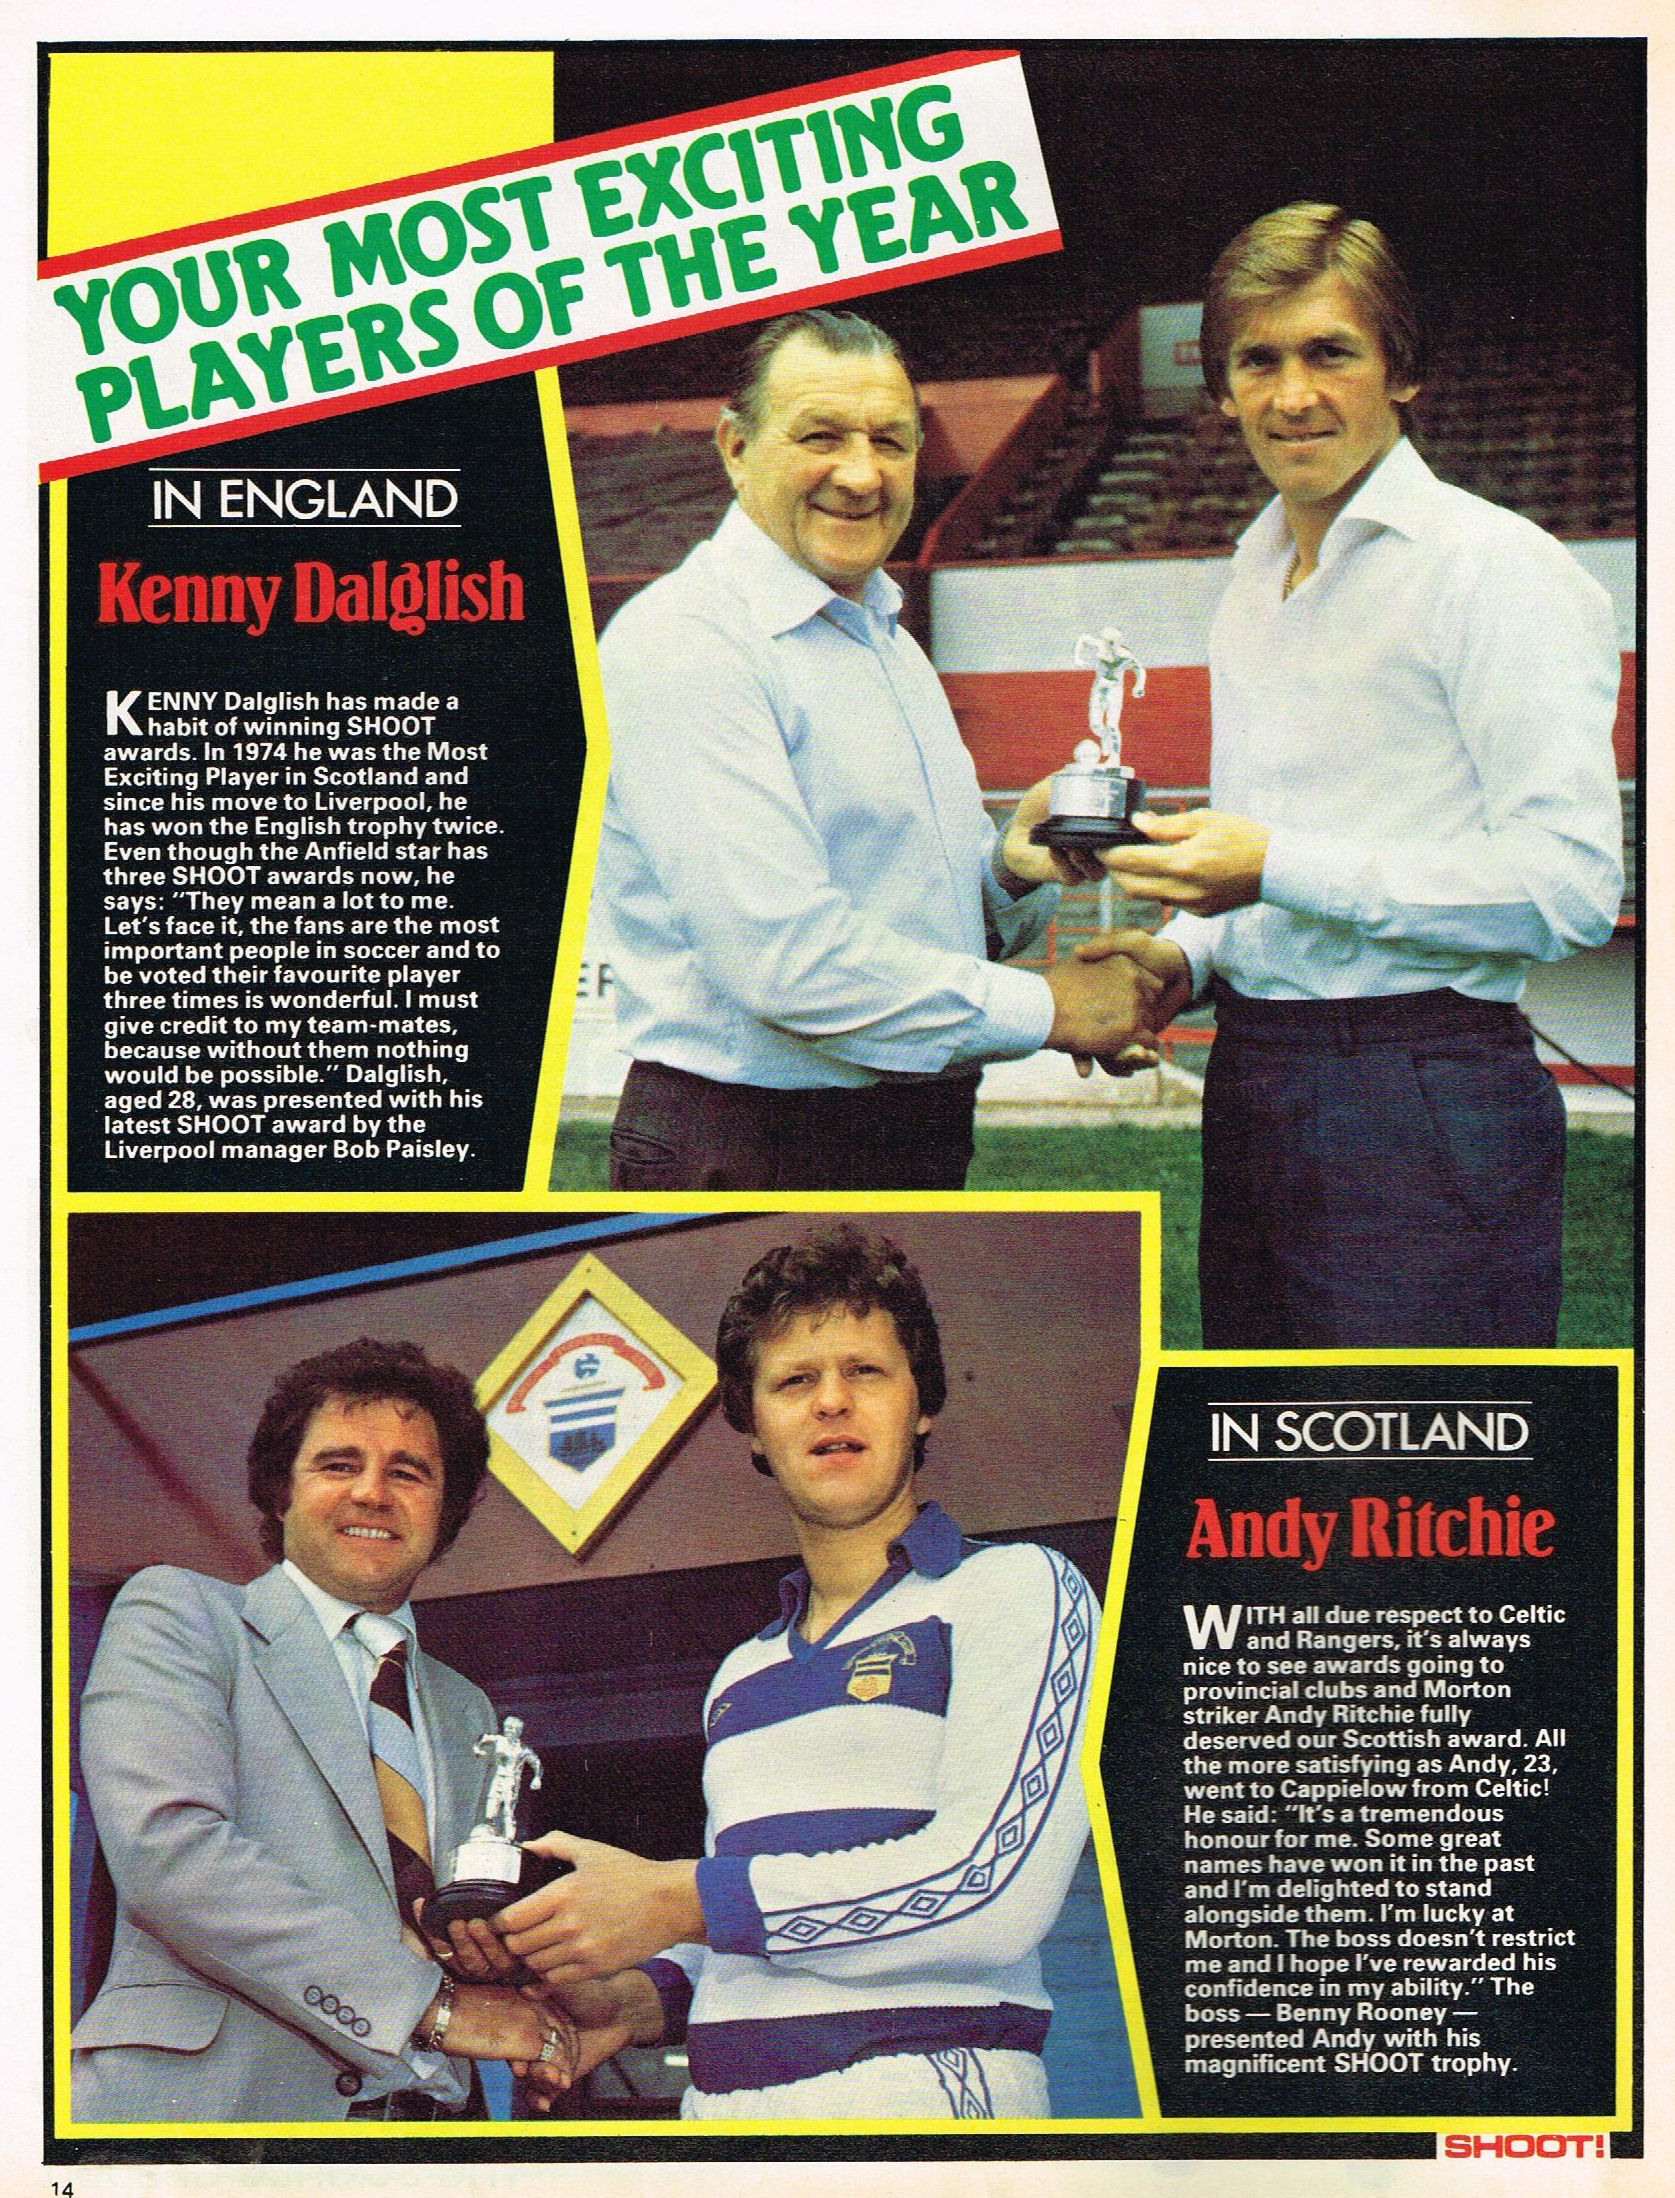 Most exciting player of the year - 25 August 1979